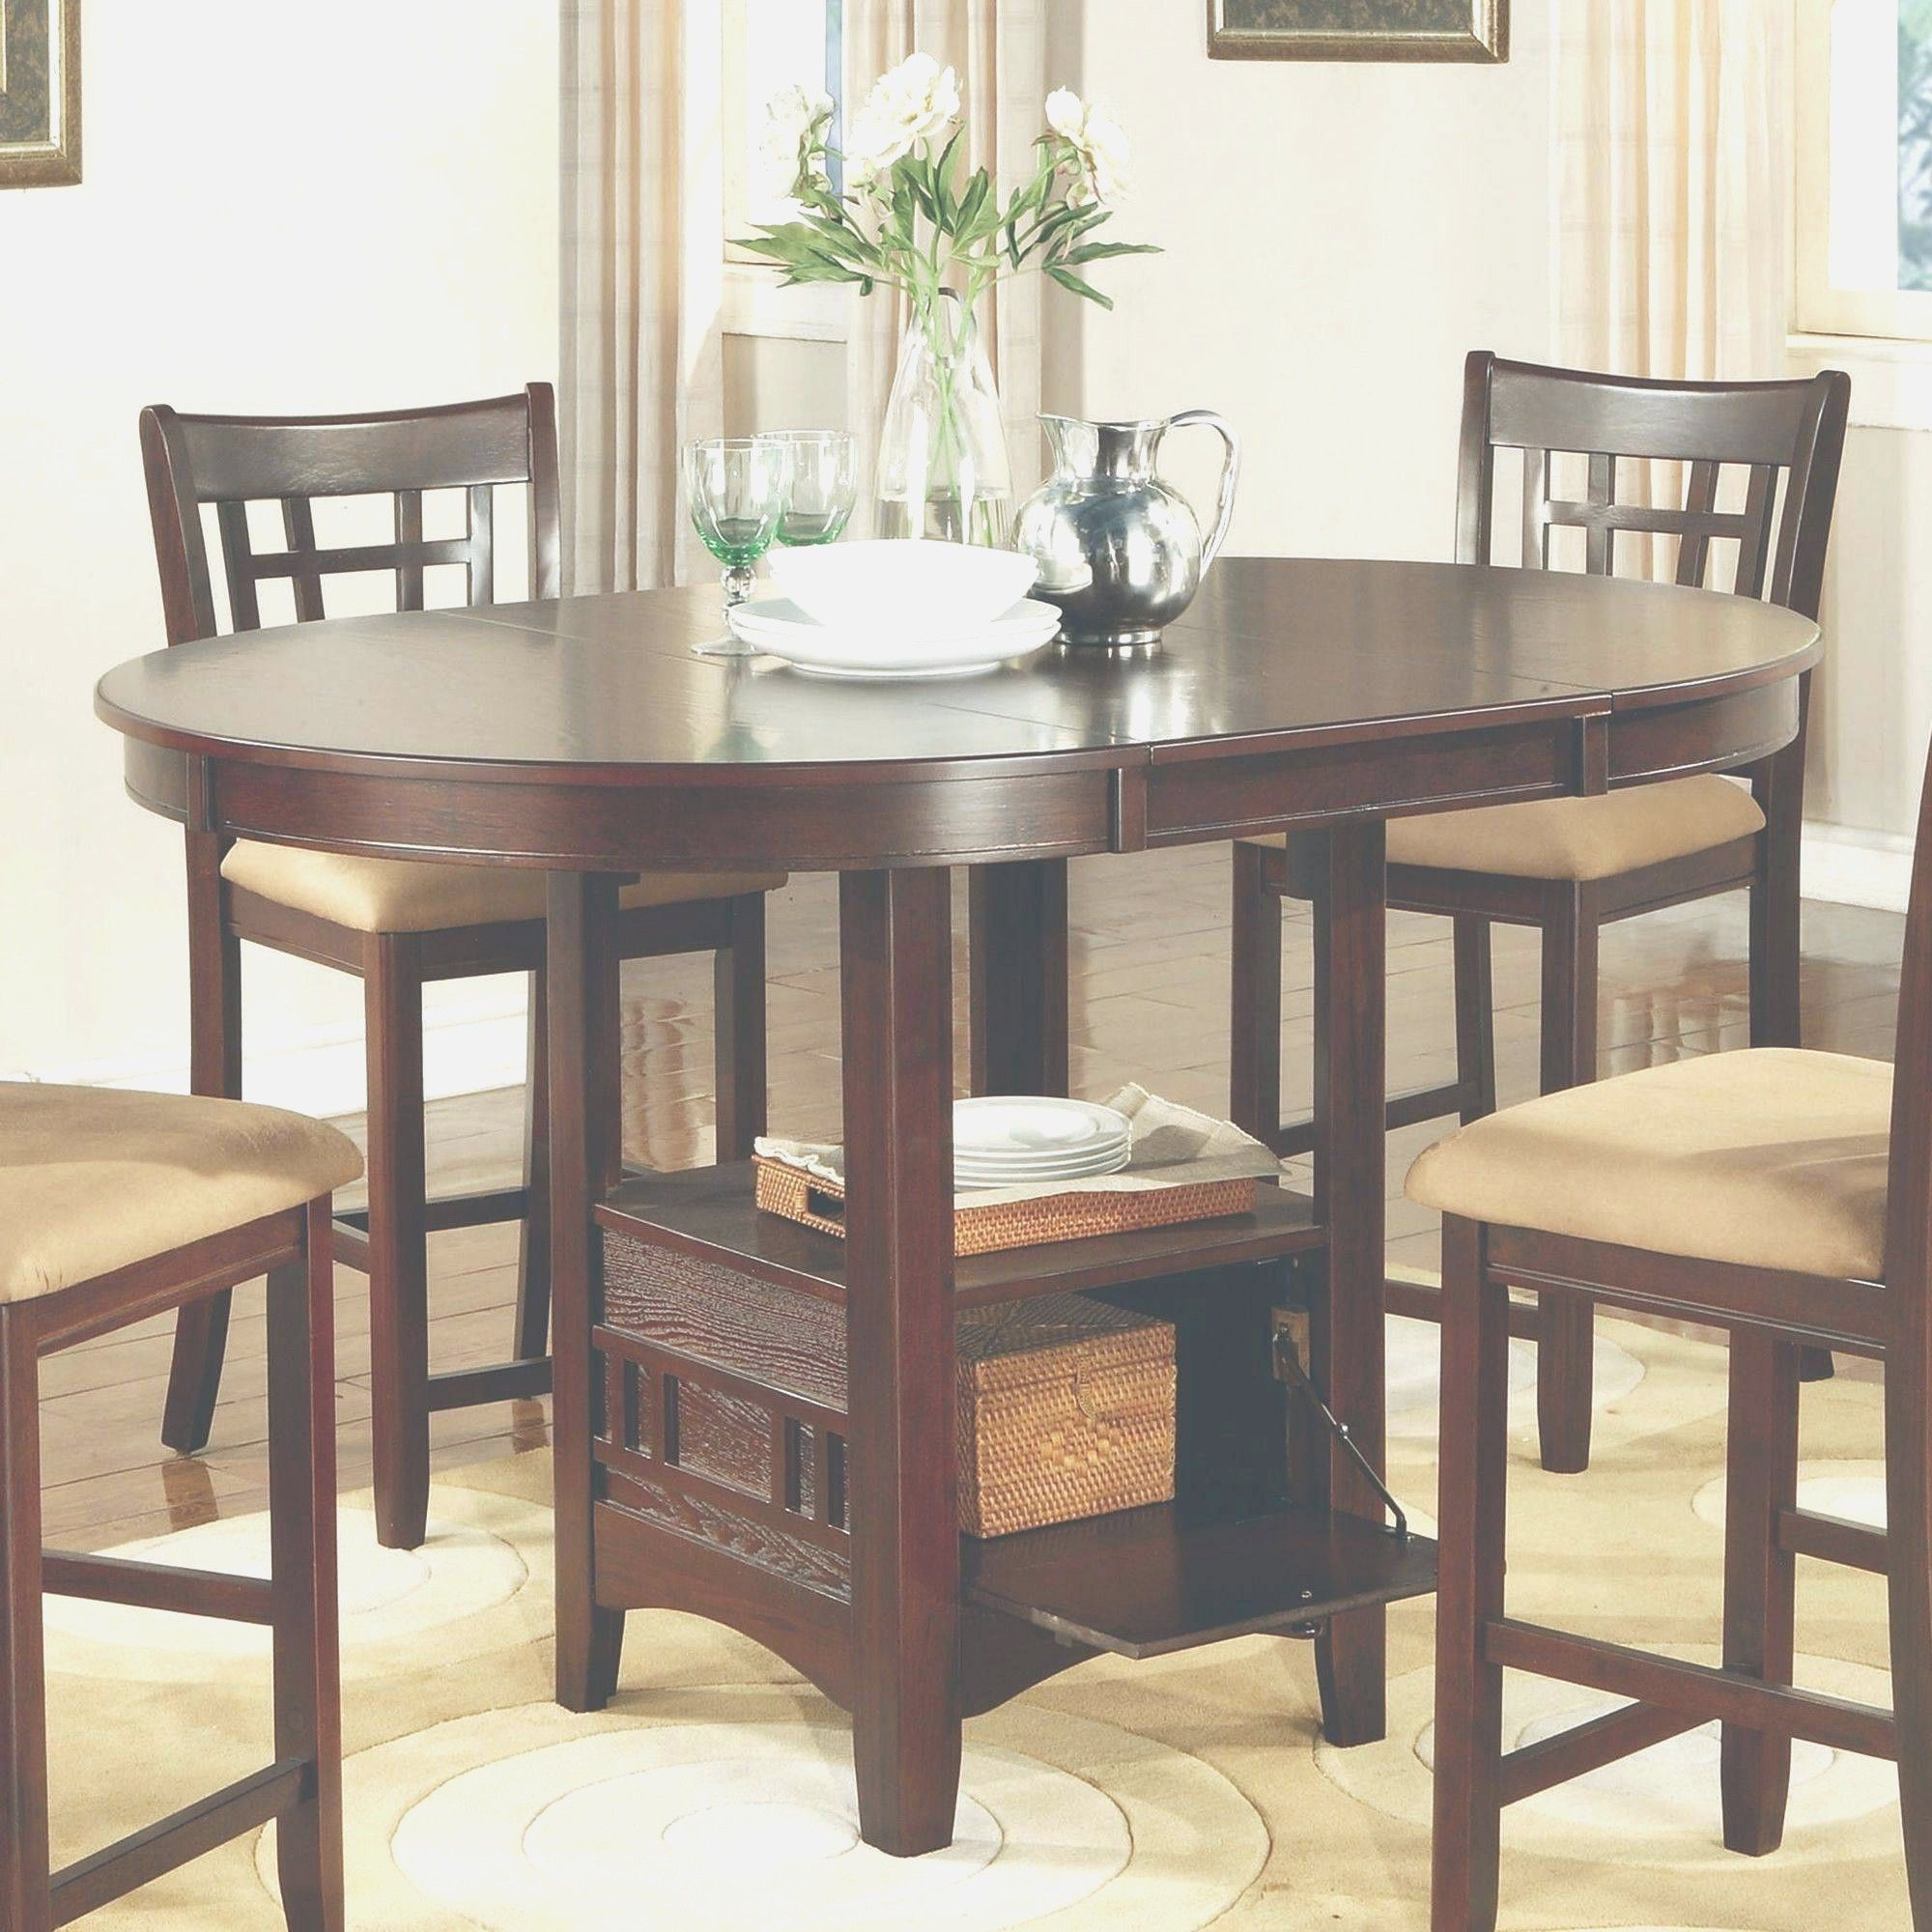 Heavy Duty Wooden Kitchen Chairs - Home Ideas